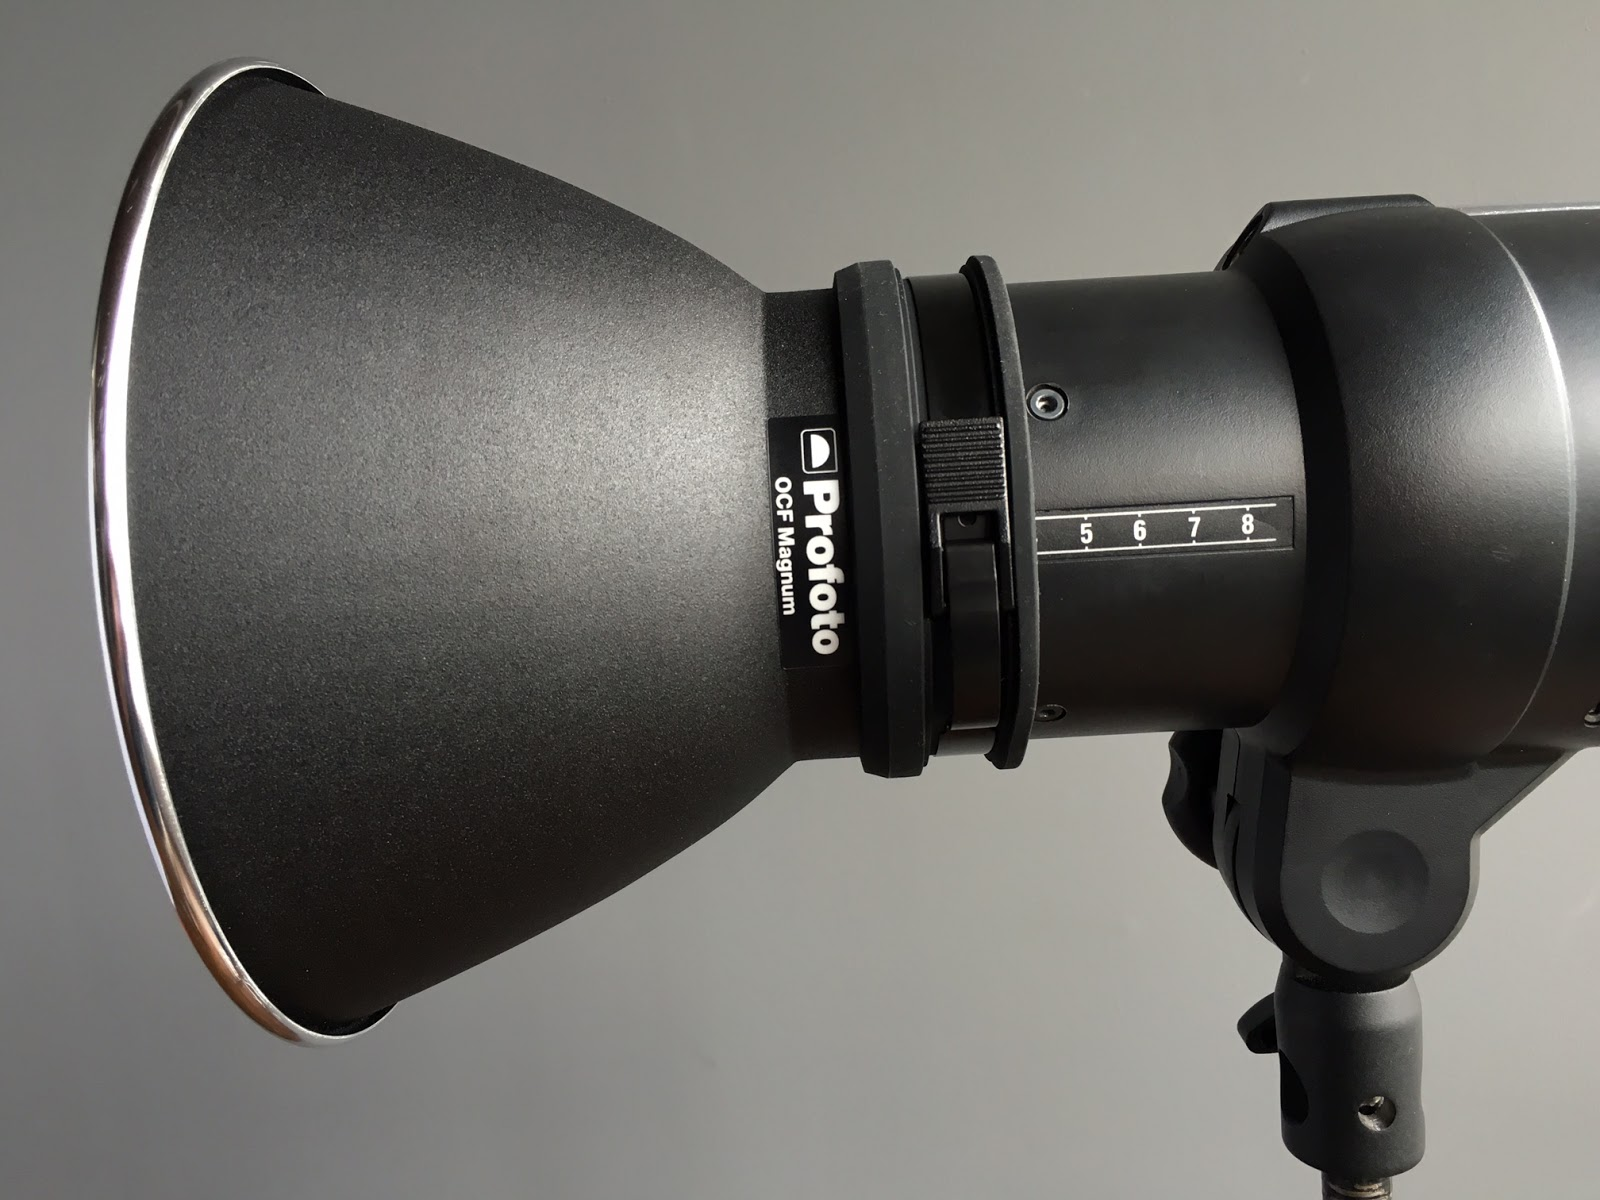 The OCF Magnum reflector correctly focused at position 4 for maximum output.